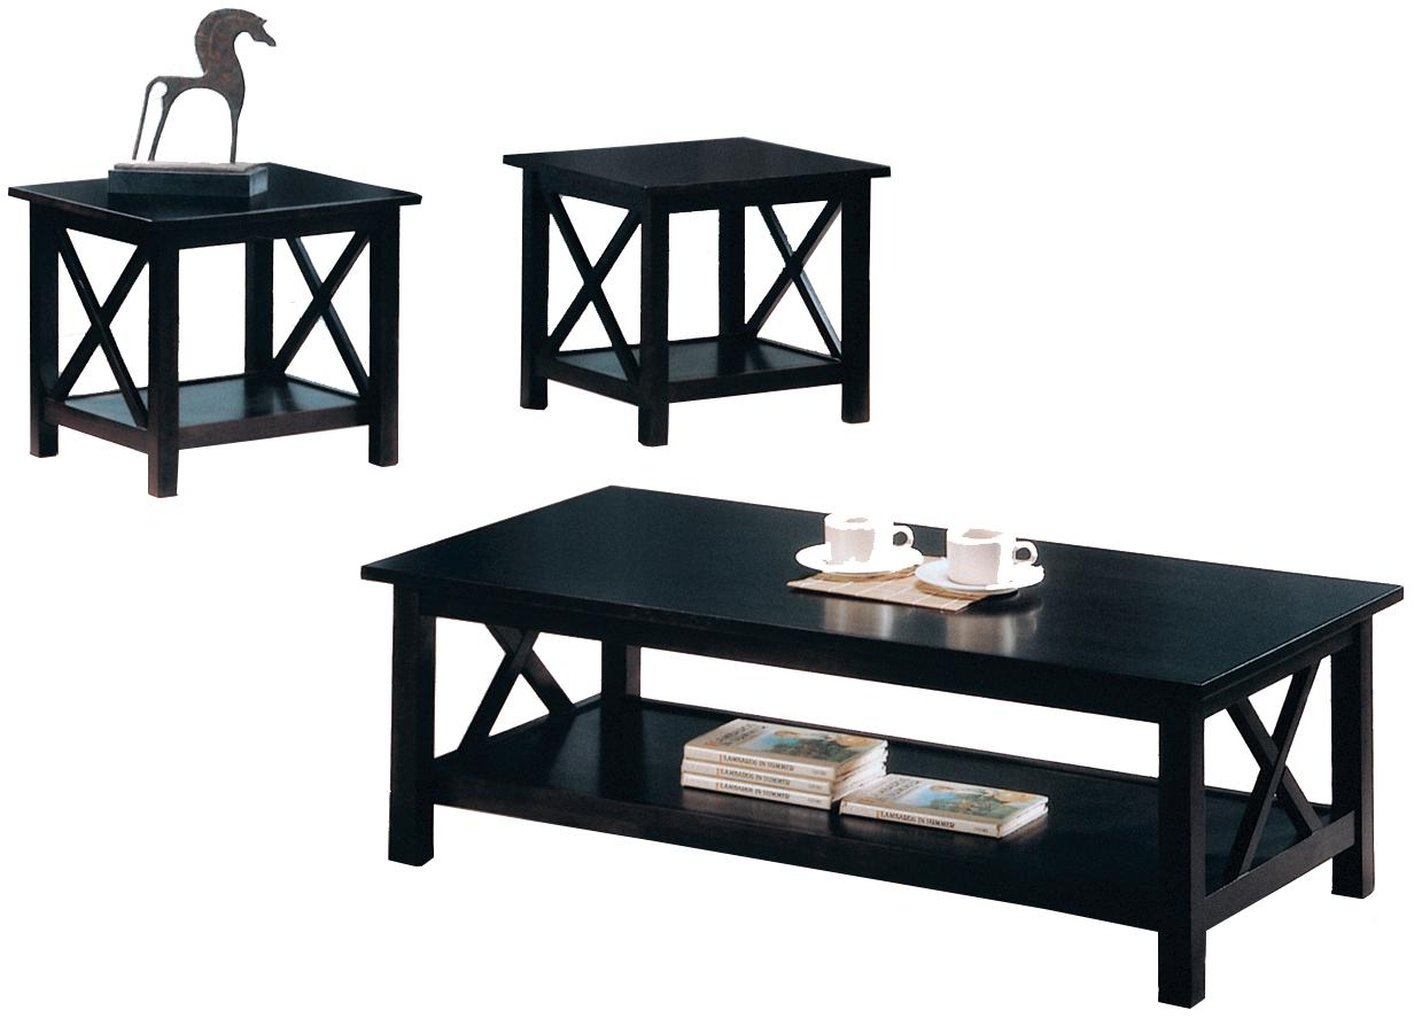 black wood coffee table set steal sofa furniture los and end sets angeles italian design chairs painted solid outdoor distressed farmhouse hallway toronto small dog crate oval